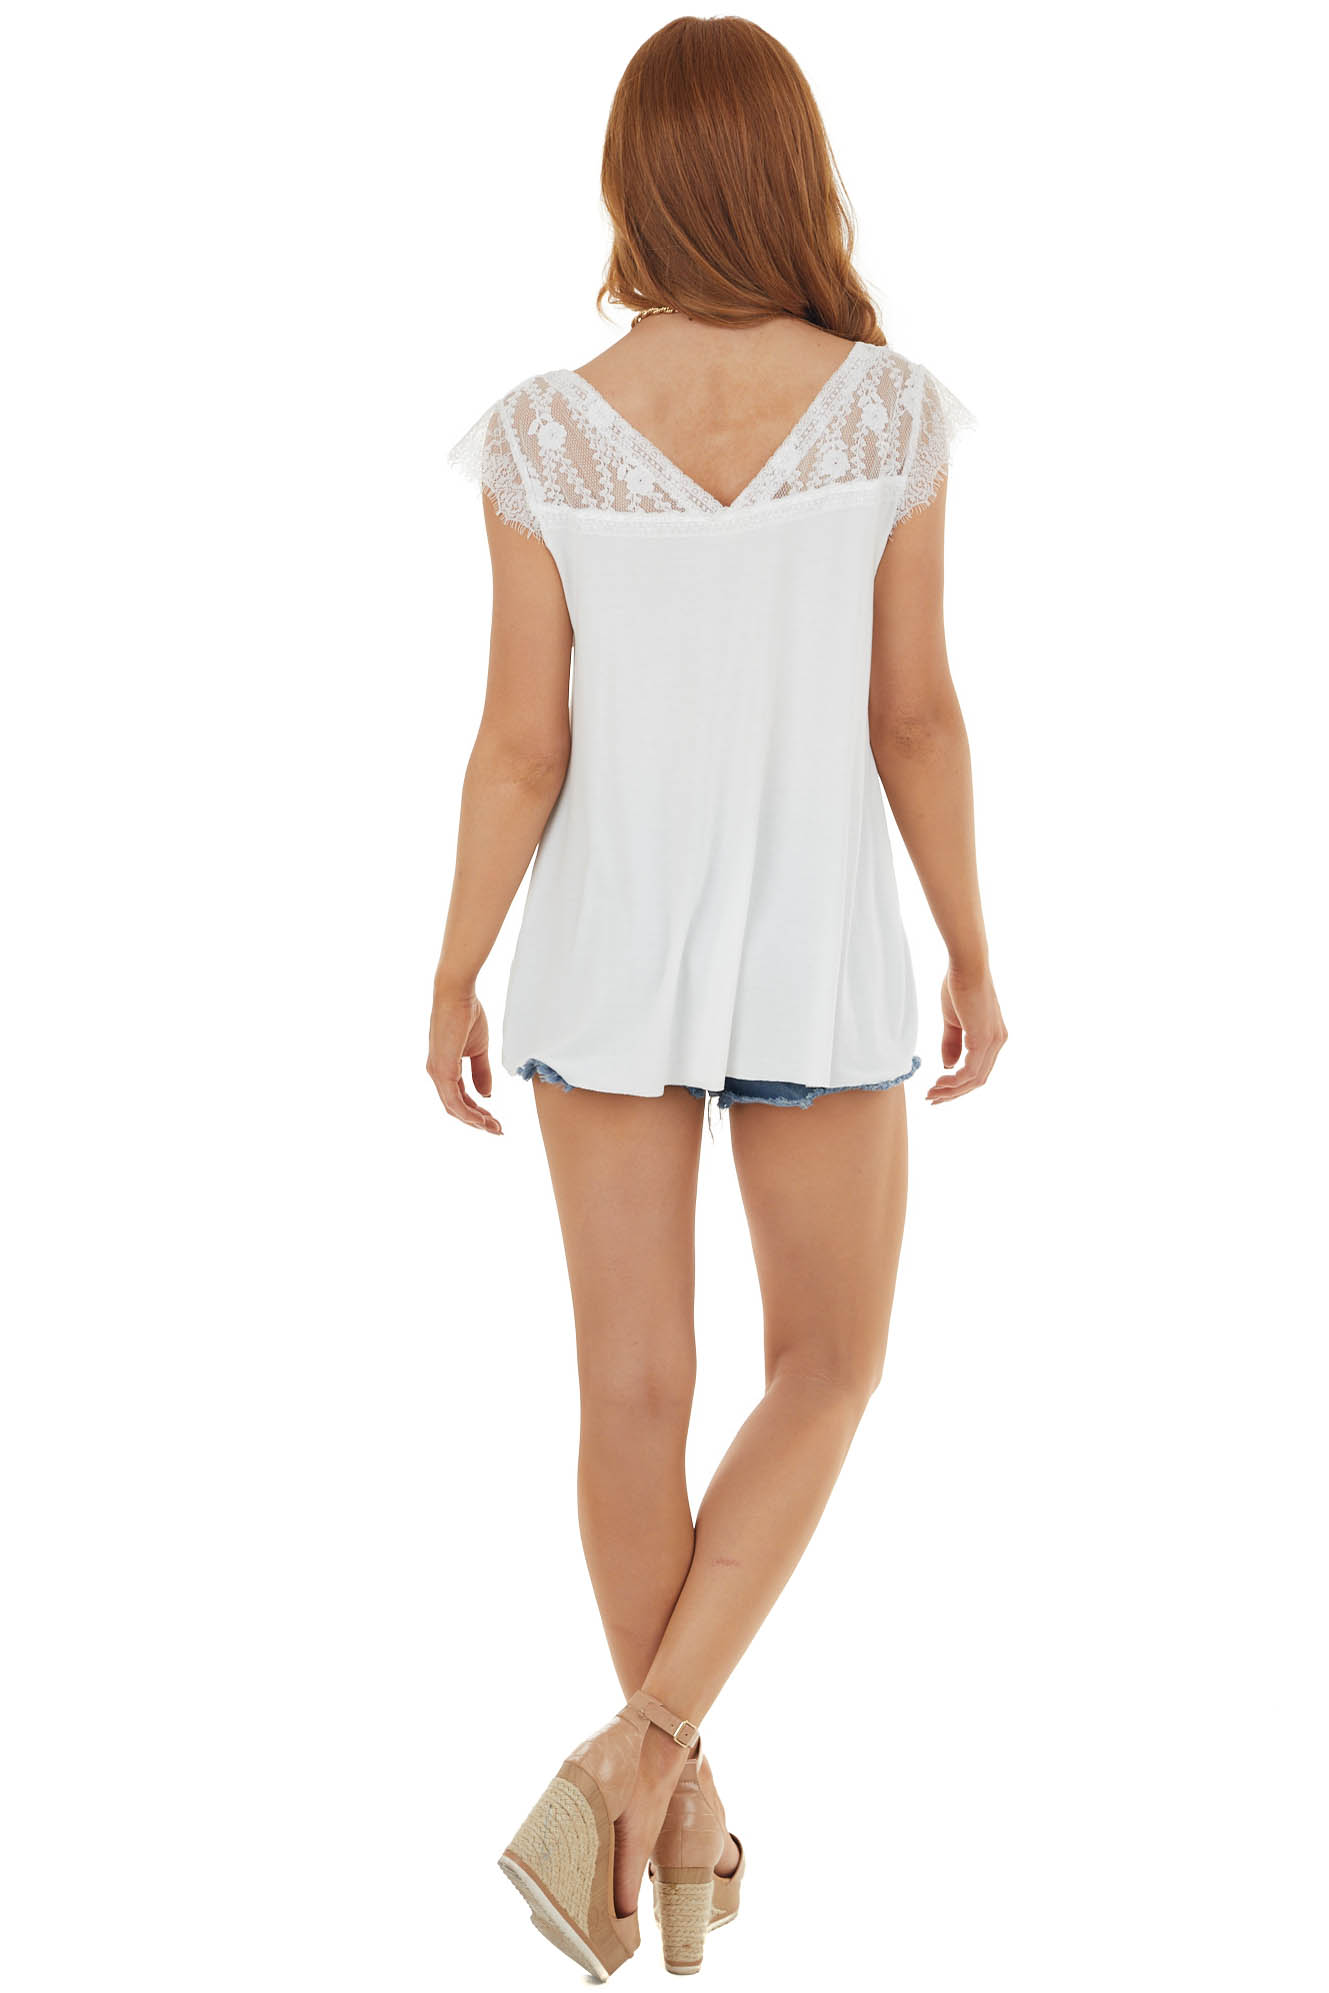 Pearl Cap Sleeve Loose Knit Top with Crochet Lace Detail